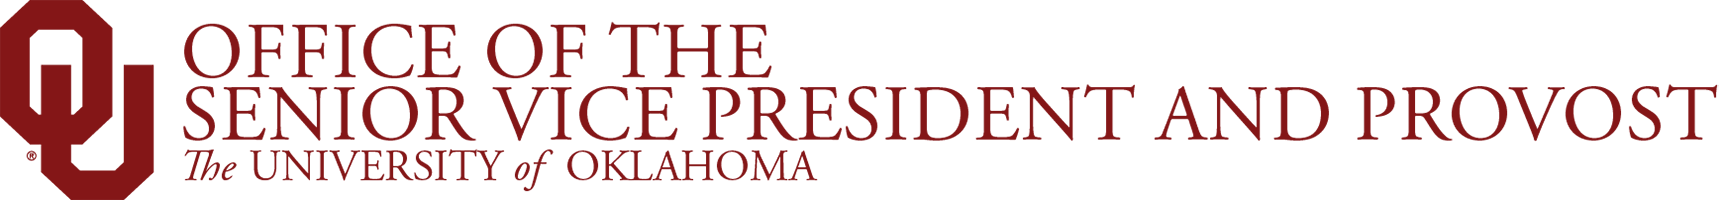 Office of the Senior Vice President & Provost Website